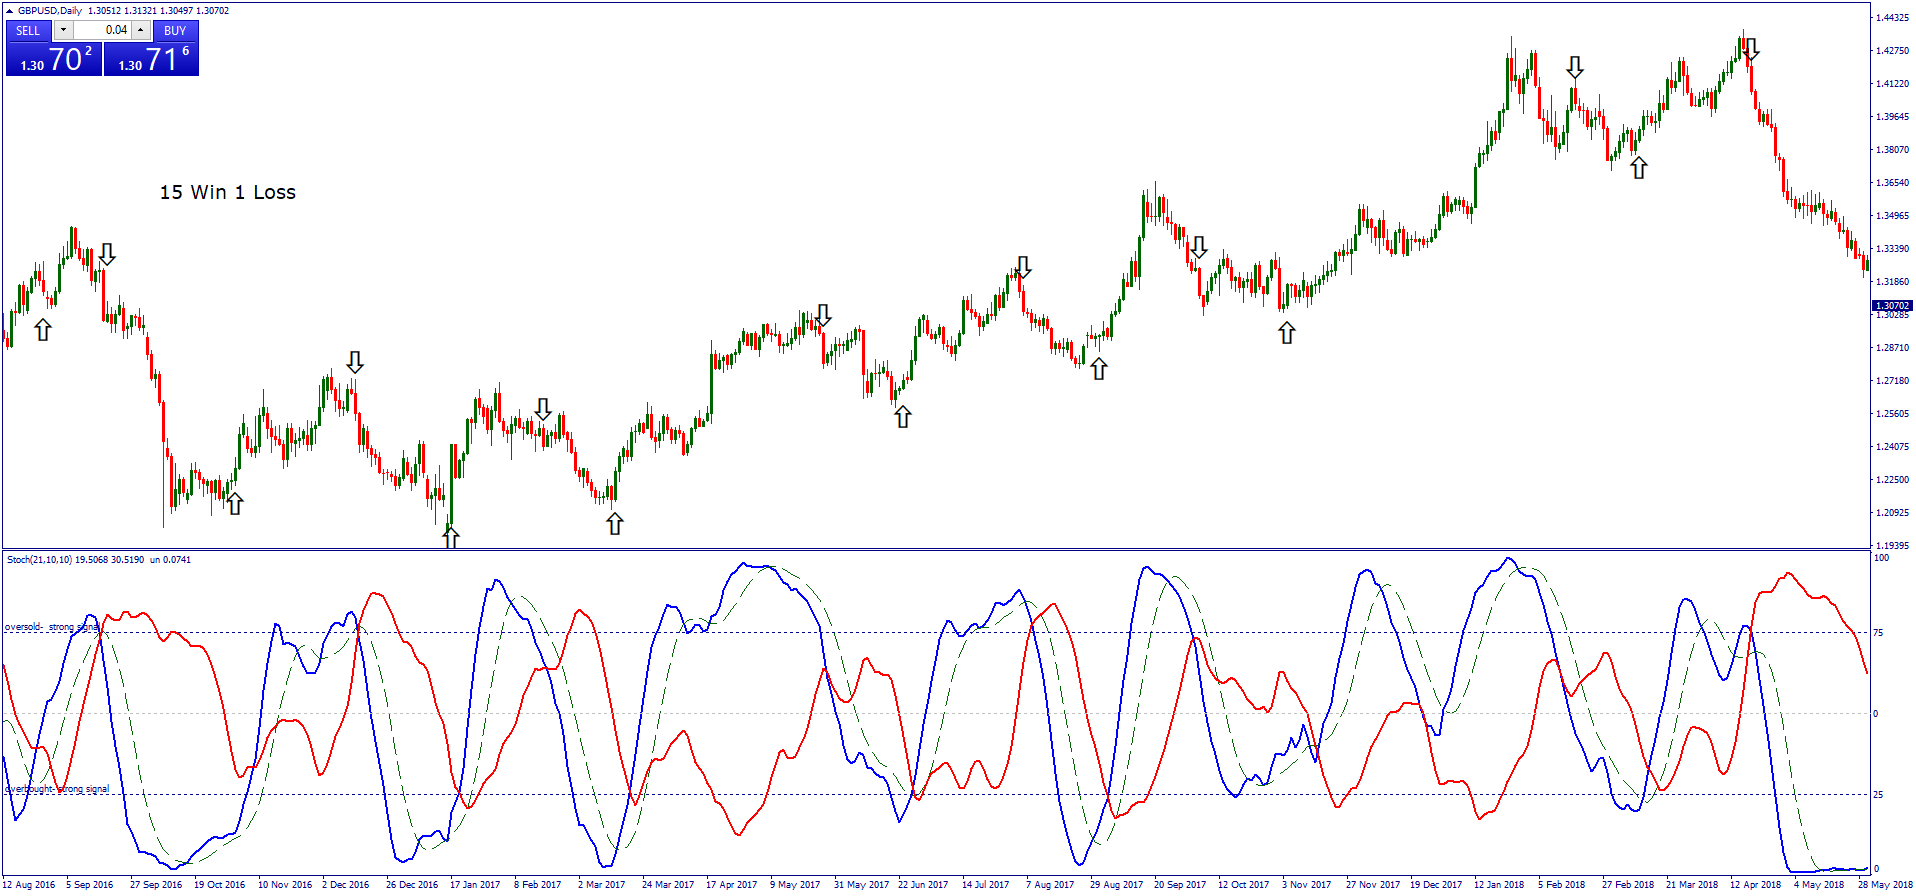 Hedging Dynamic Forex Strategy - Forex Strategies - Forex